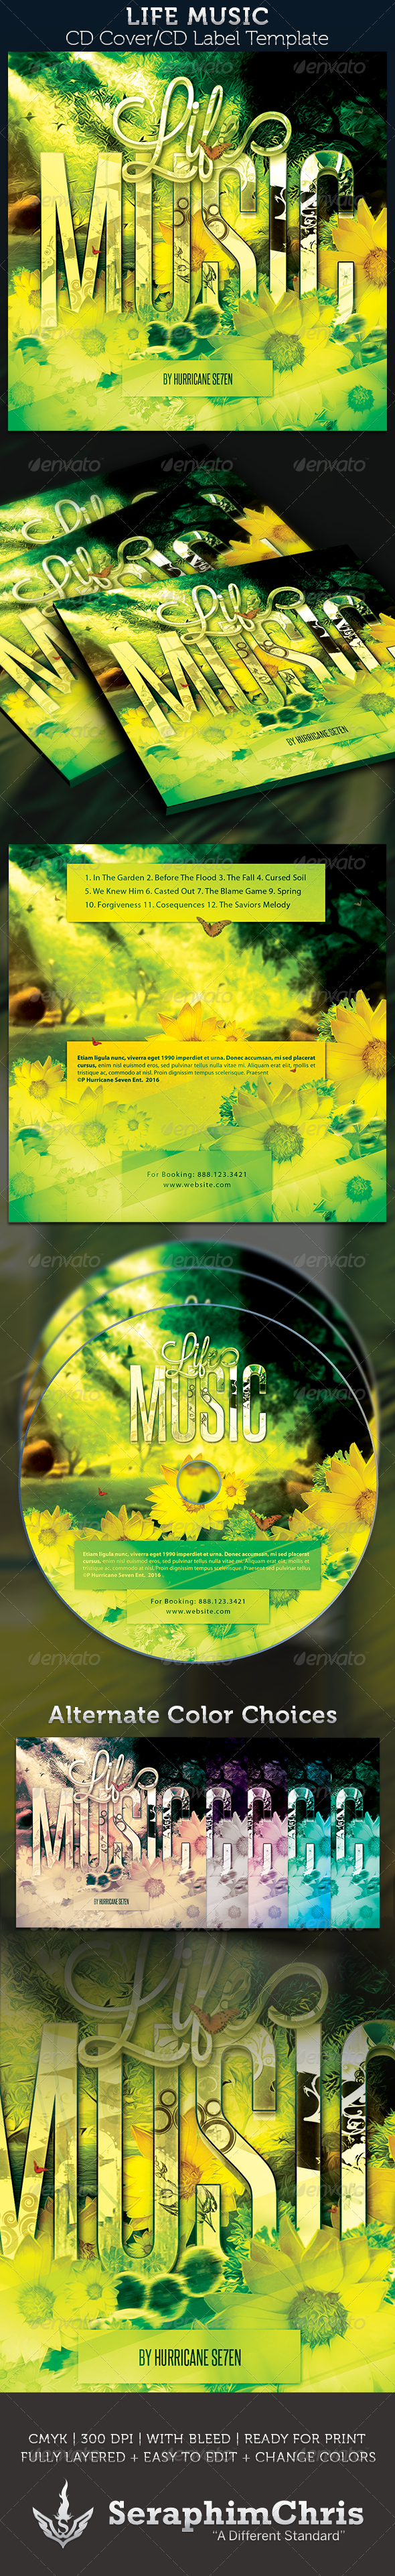 Life Music CD Cover Artwork Template - CD & DVD Artwork Print Templates